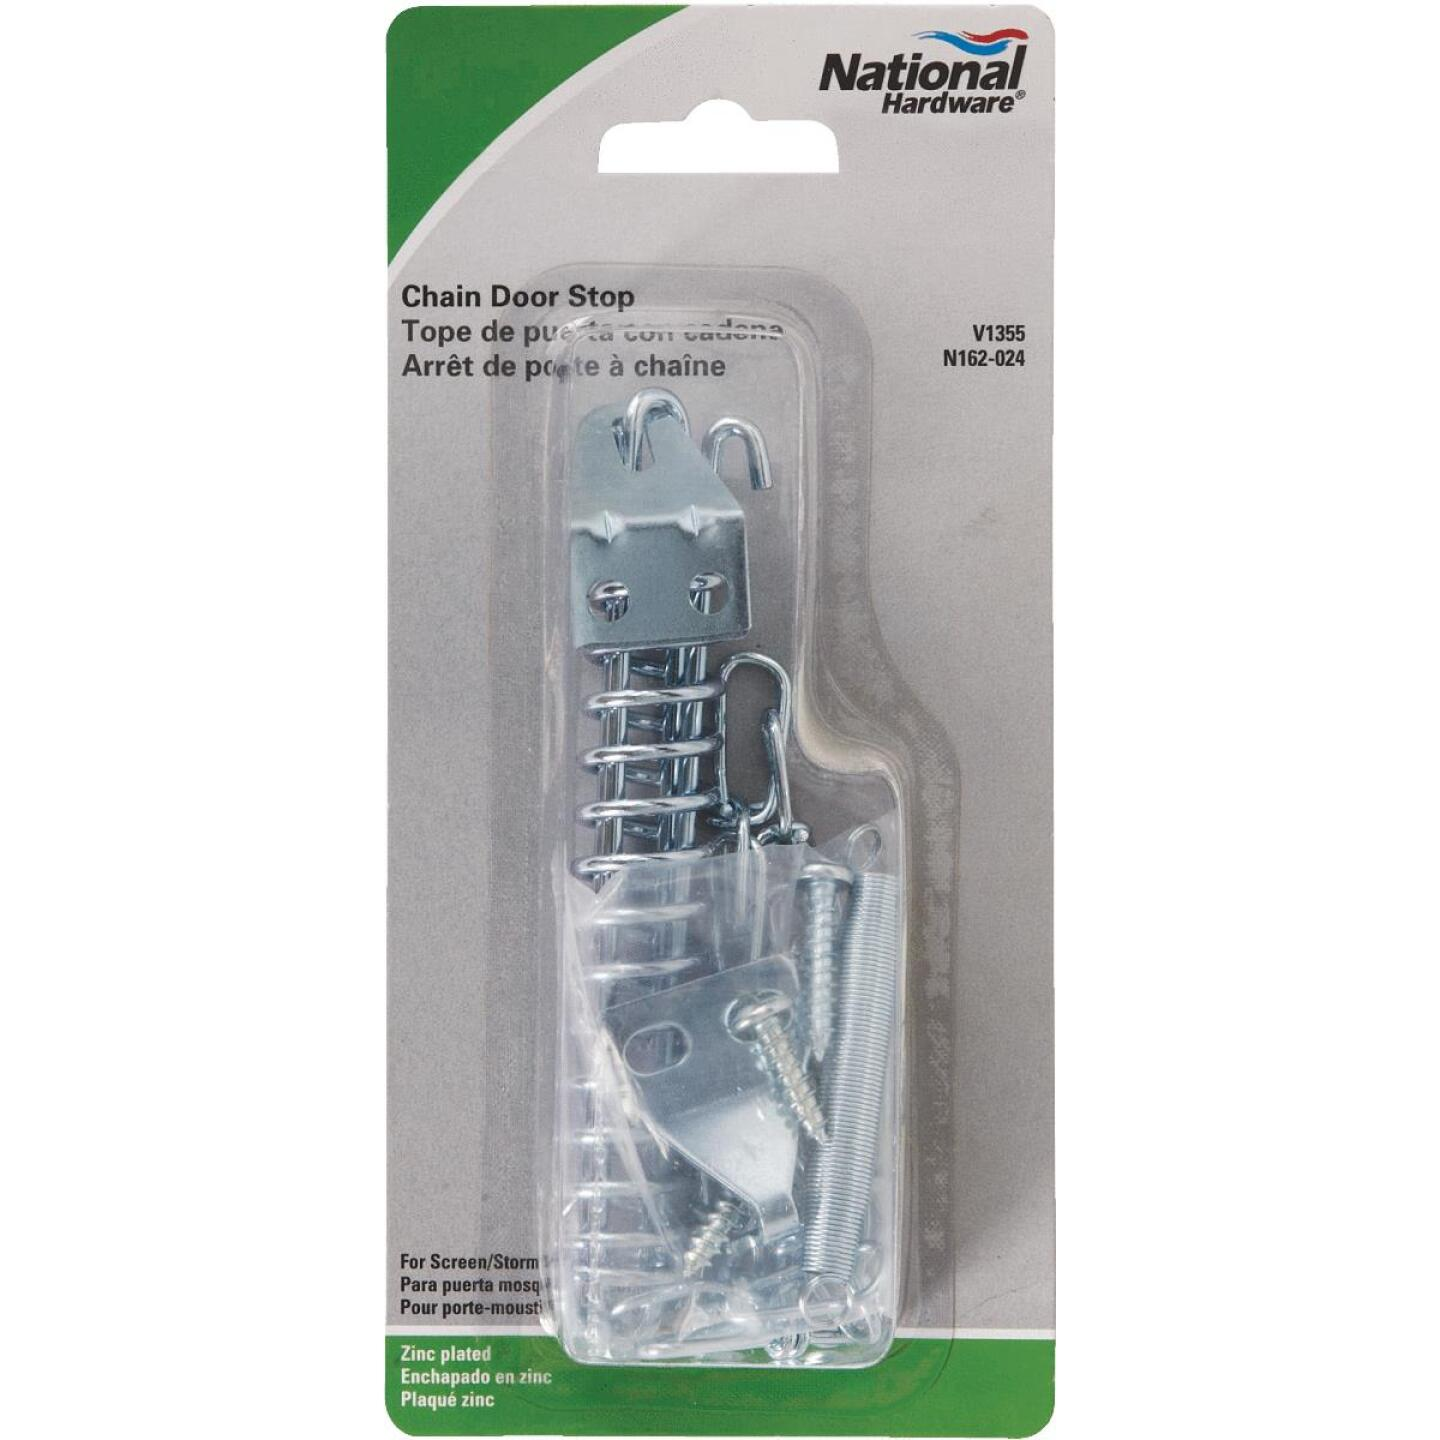 National Screen & Storm Door Stop Spring Chain Image 2